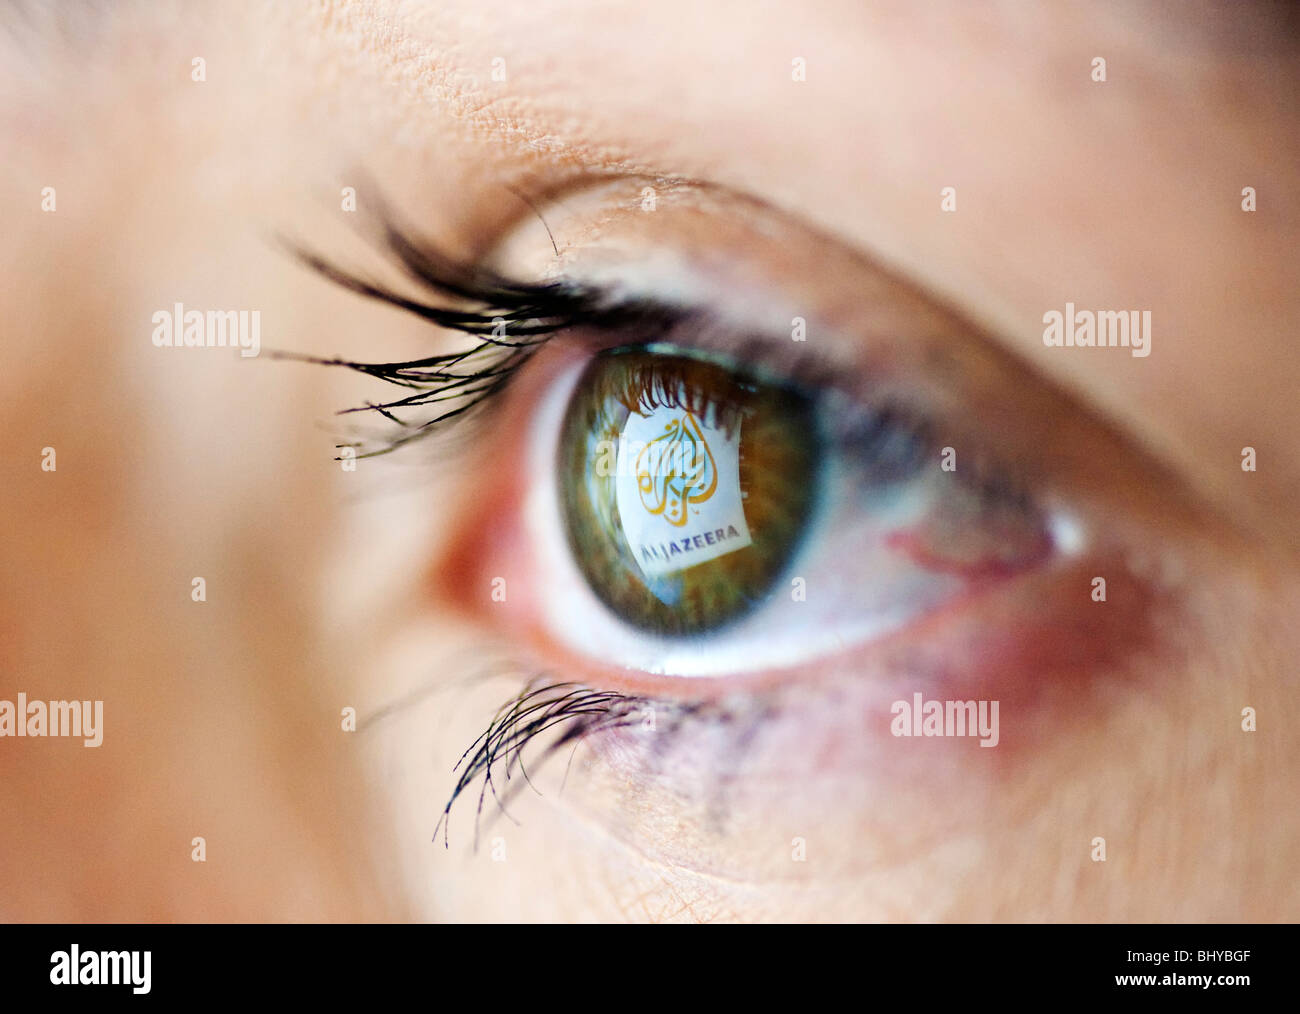 Arabic television channel news service Al Jazeera website logo reflected in womans eye from computer screen - Stock Image